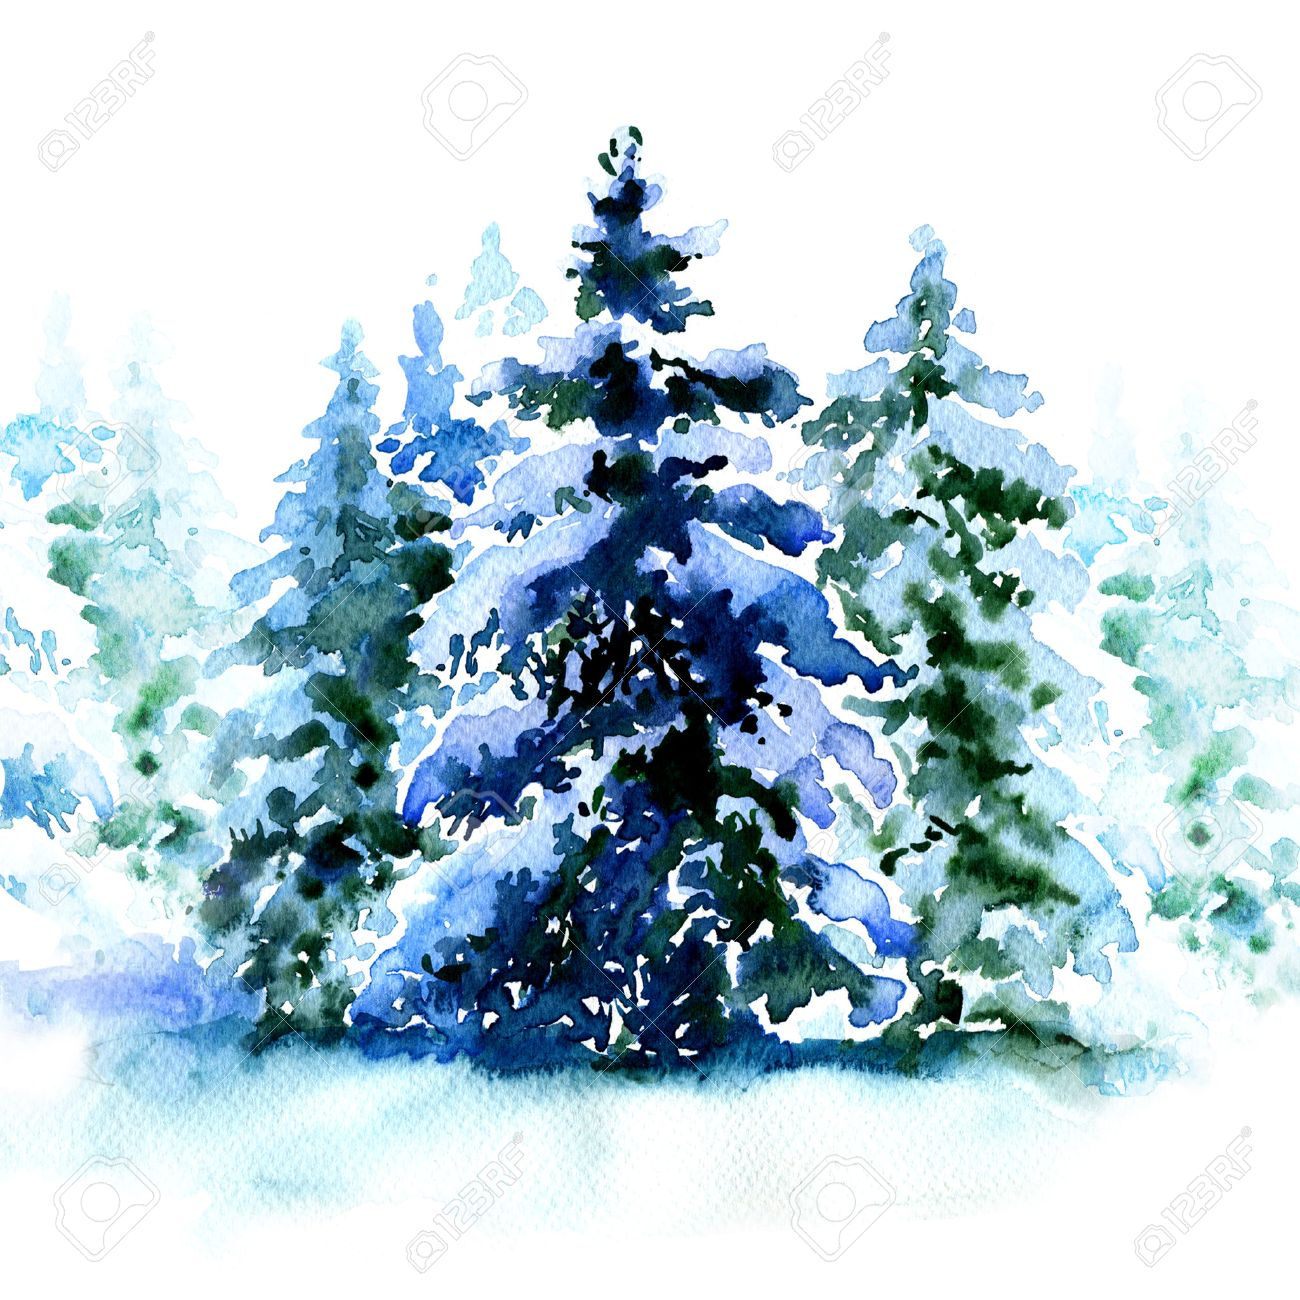 Group Of Christmas Trees Covered Snow In Winter Isolated Watercolor